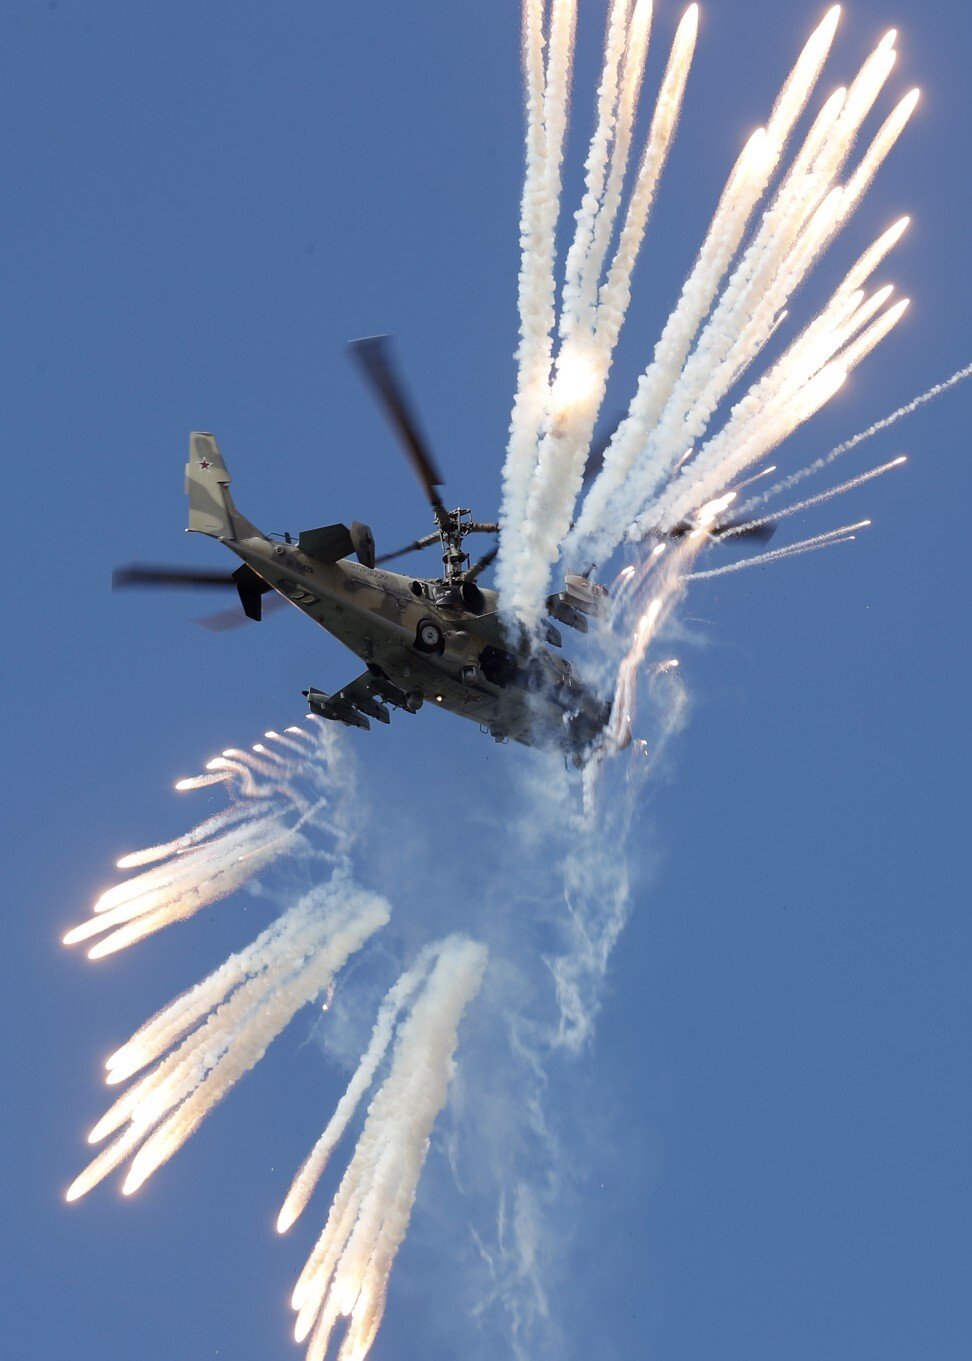 A Russian Ka 52 Alligator reconnaissance and combat helicopter performs during the MAKS 2019 International Aviation and Space Salon in Zhukovsky outside Moscow in 2019. Photo: EPA-EFE